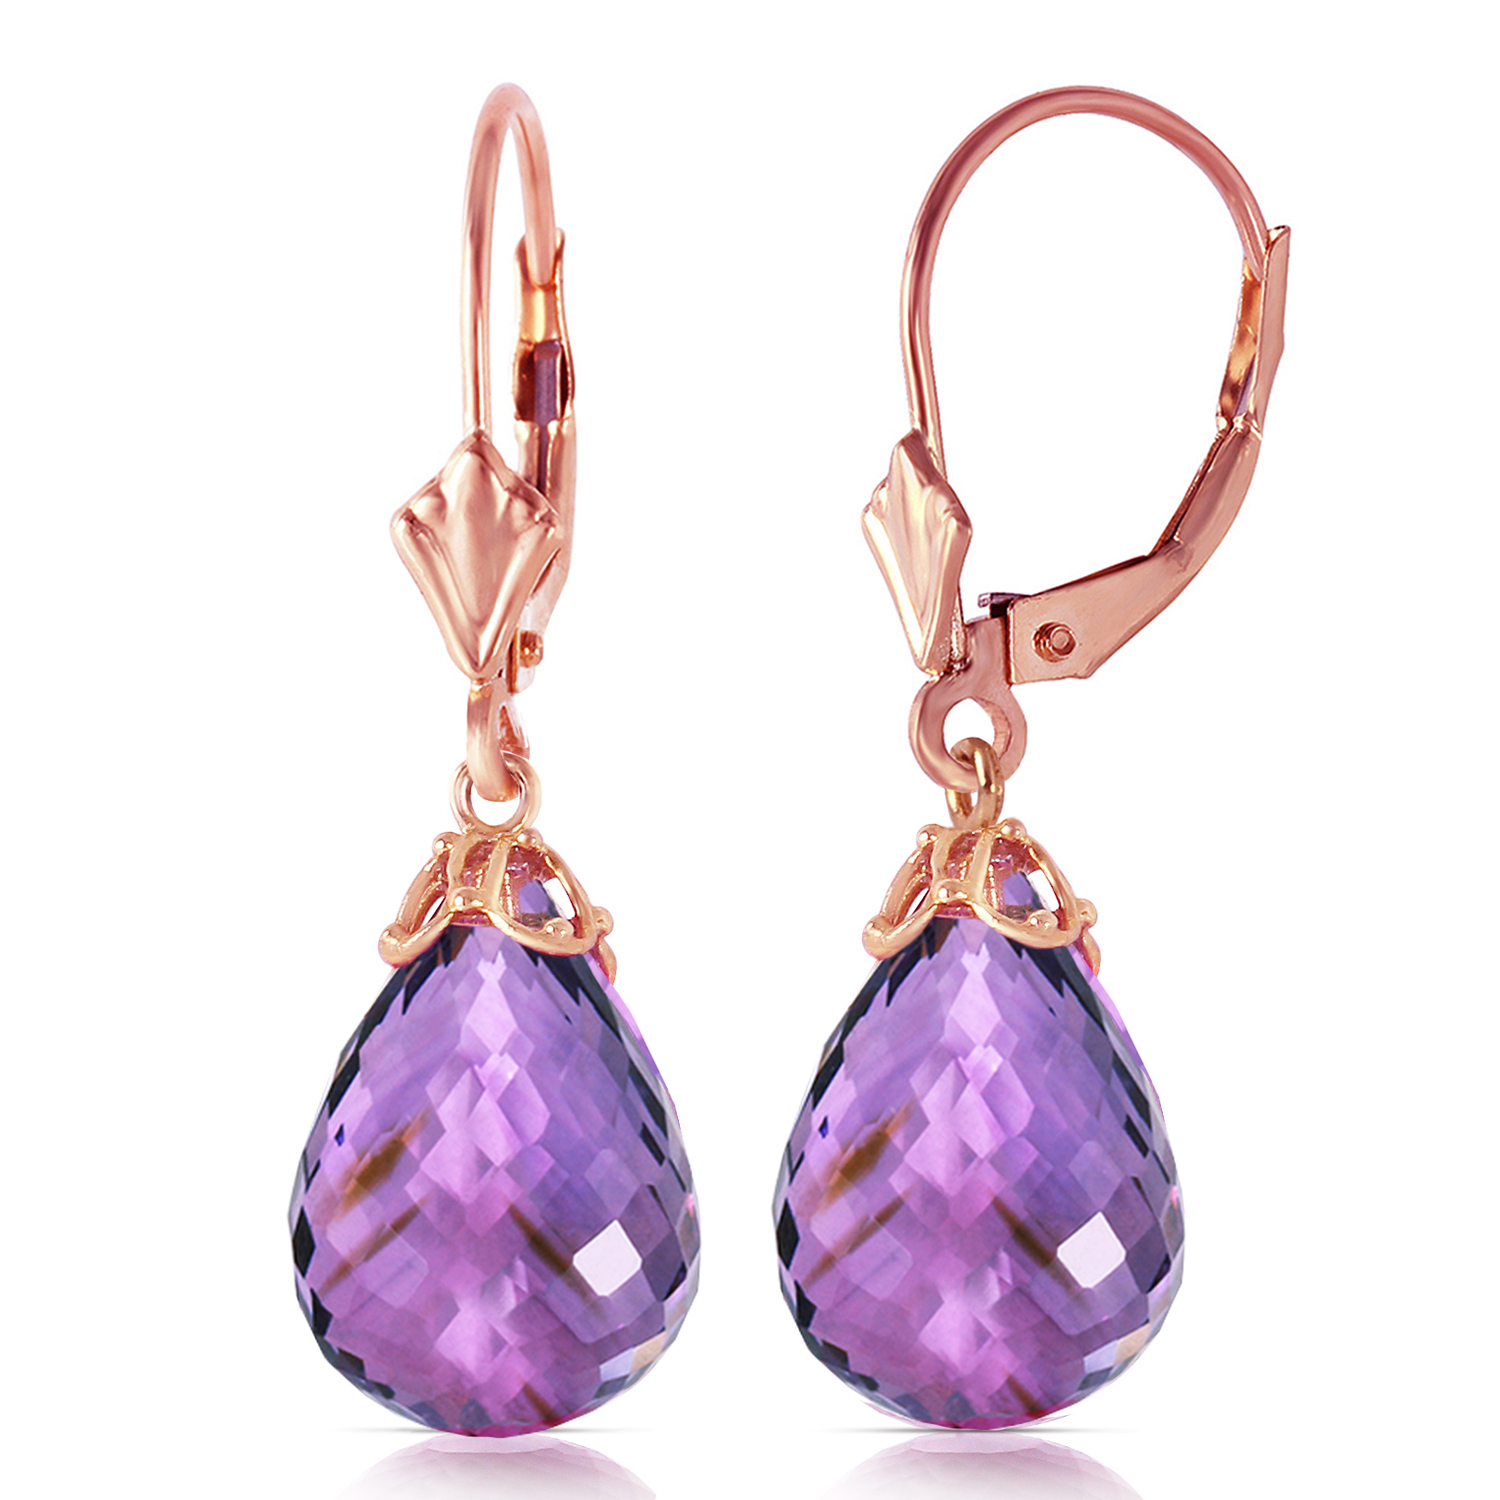 14 CTW 14K Solid Rose Gold Leverback Earrings Briolette